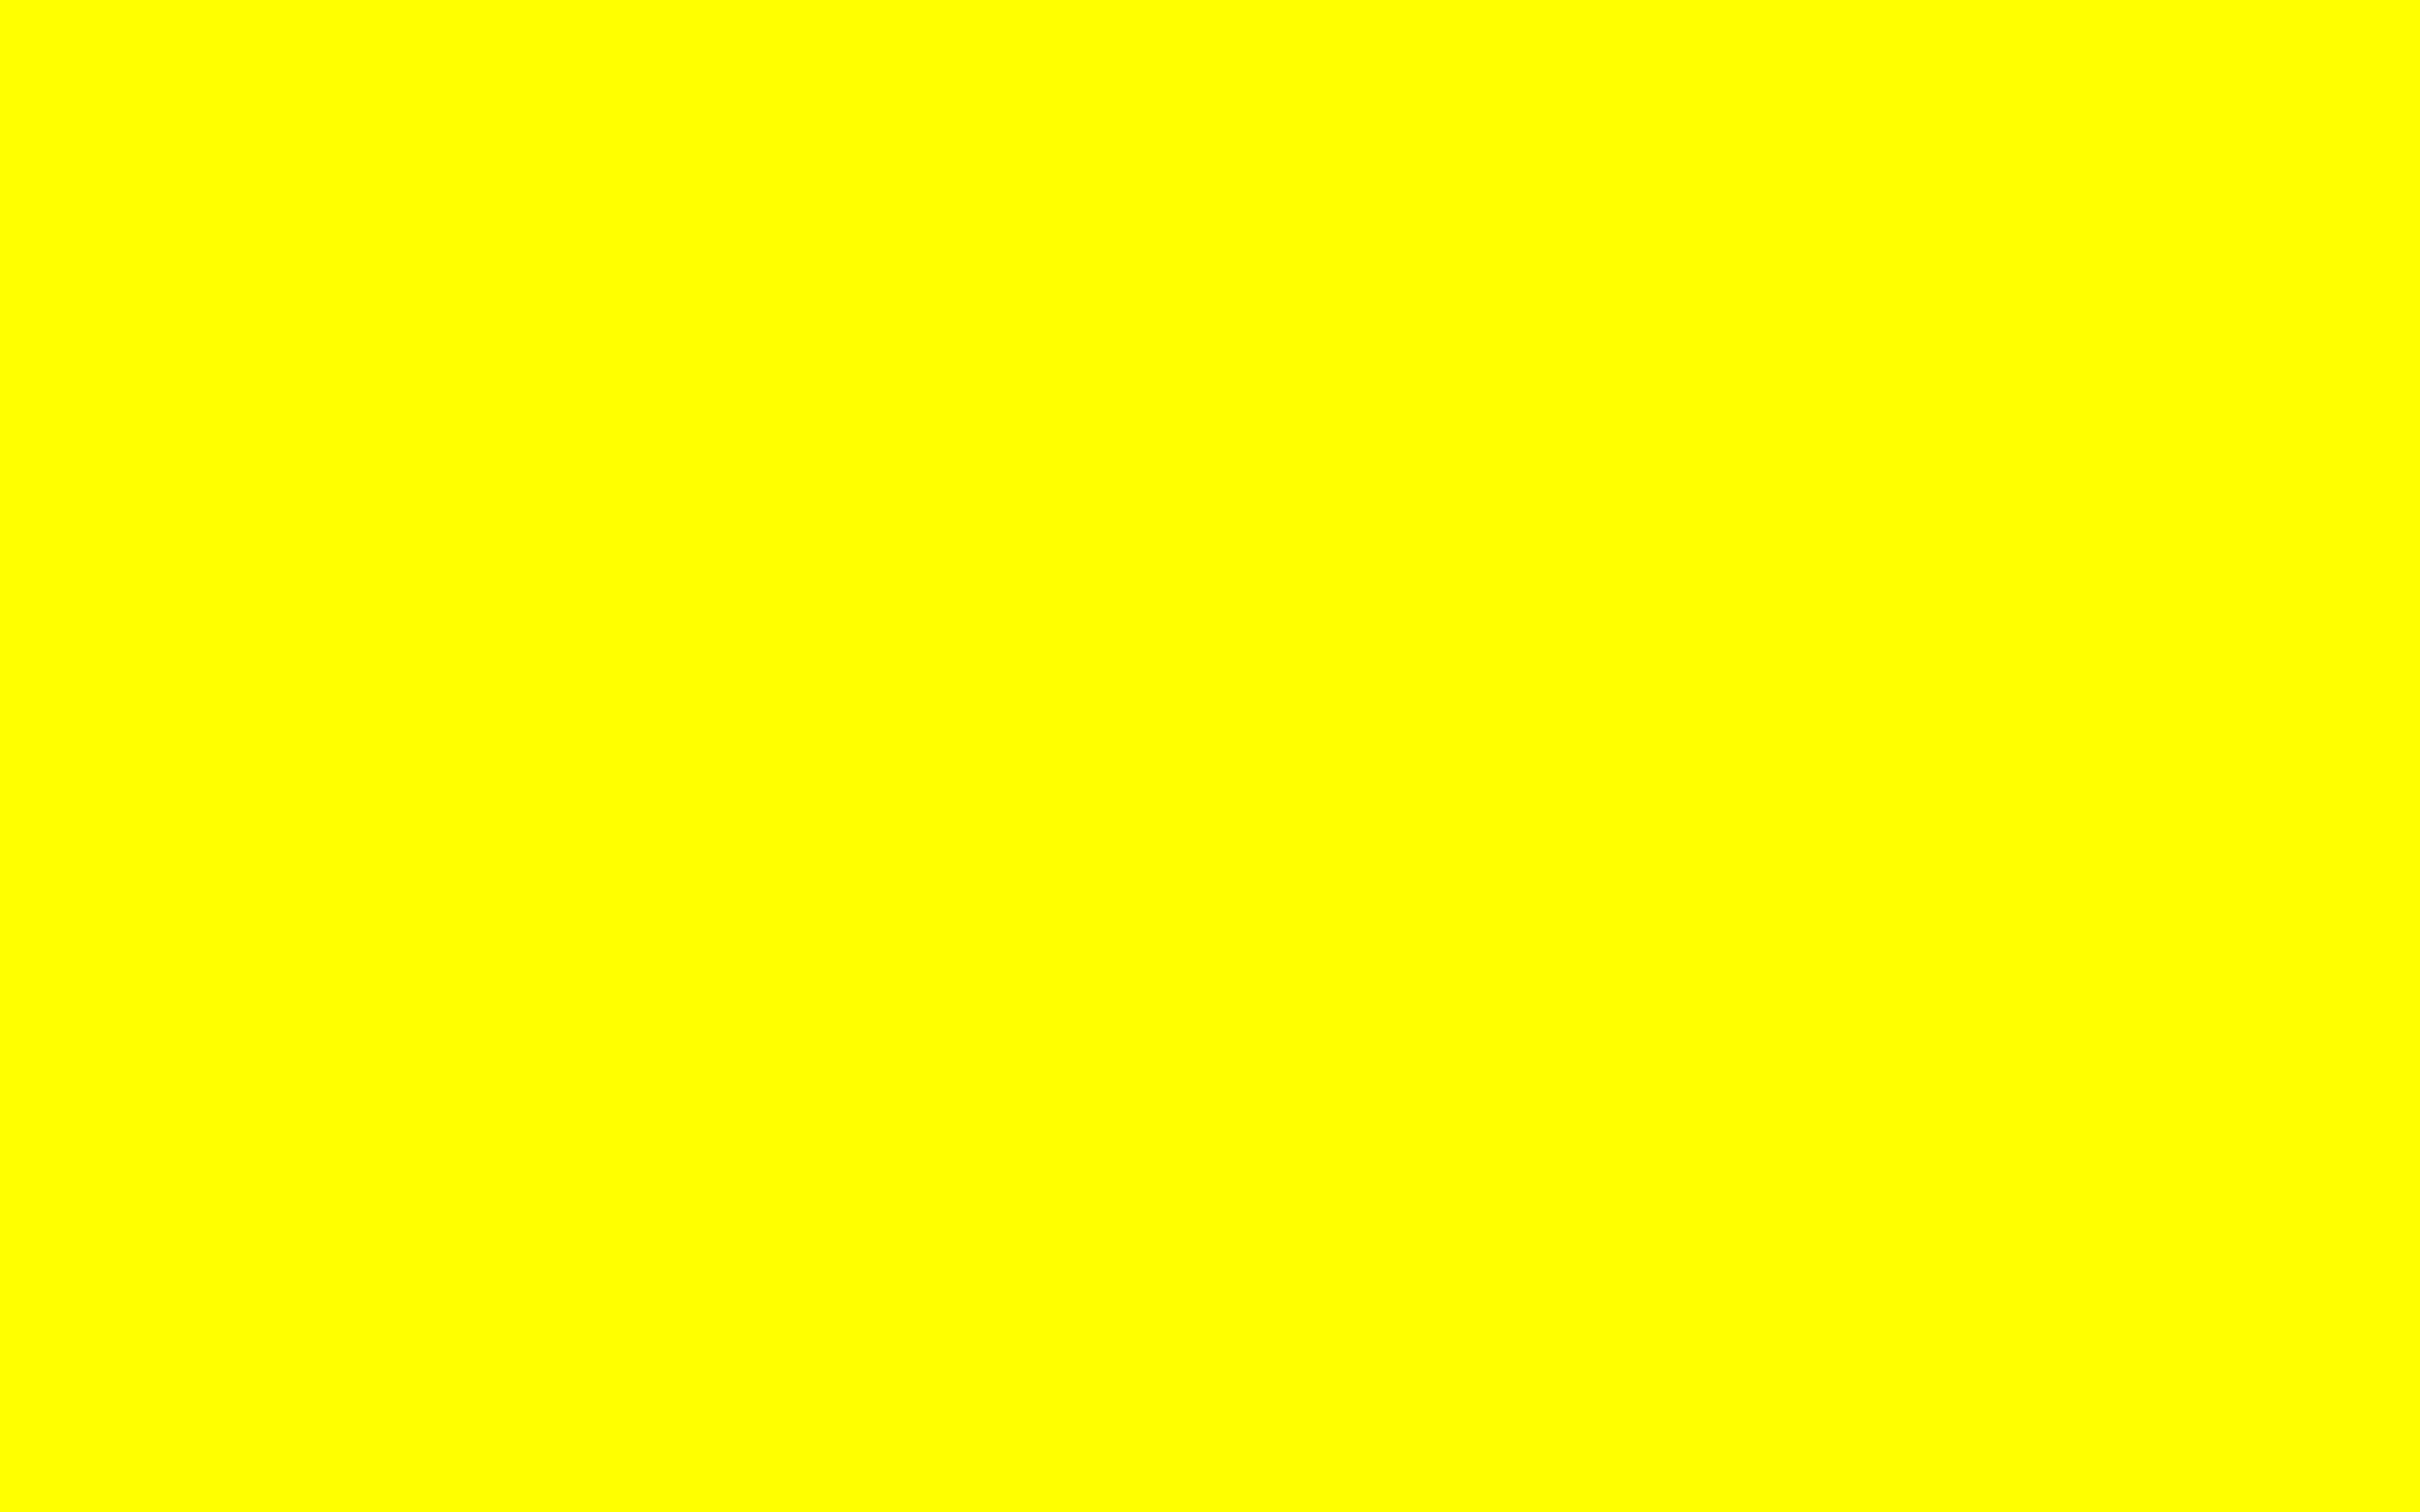 Solid Yellow Wallpaper - WallpaperSafari